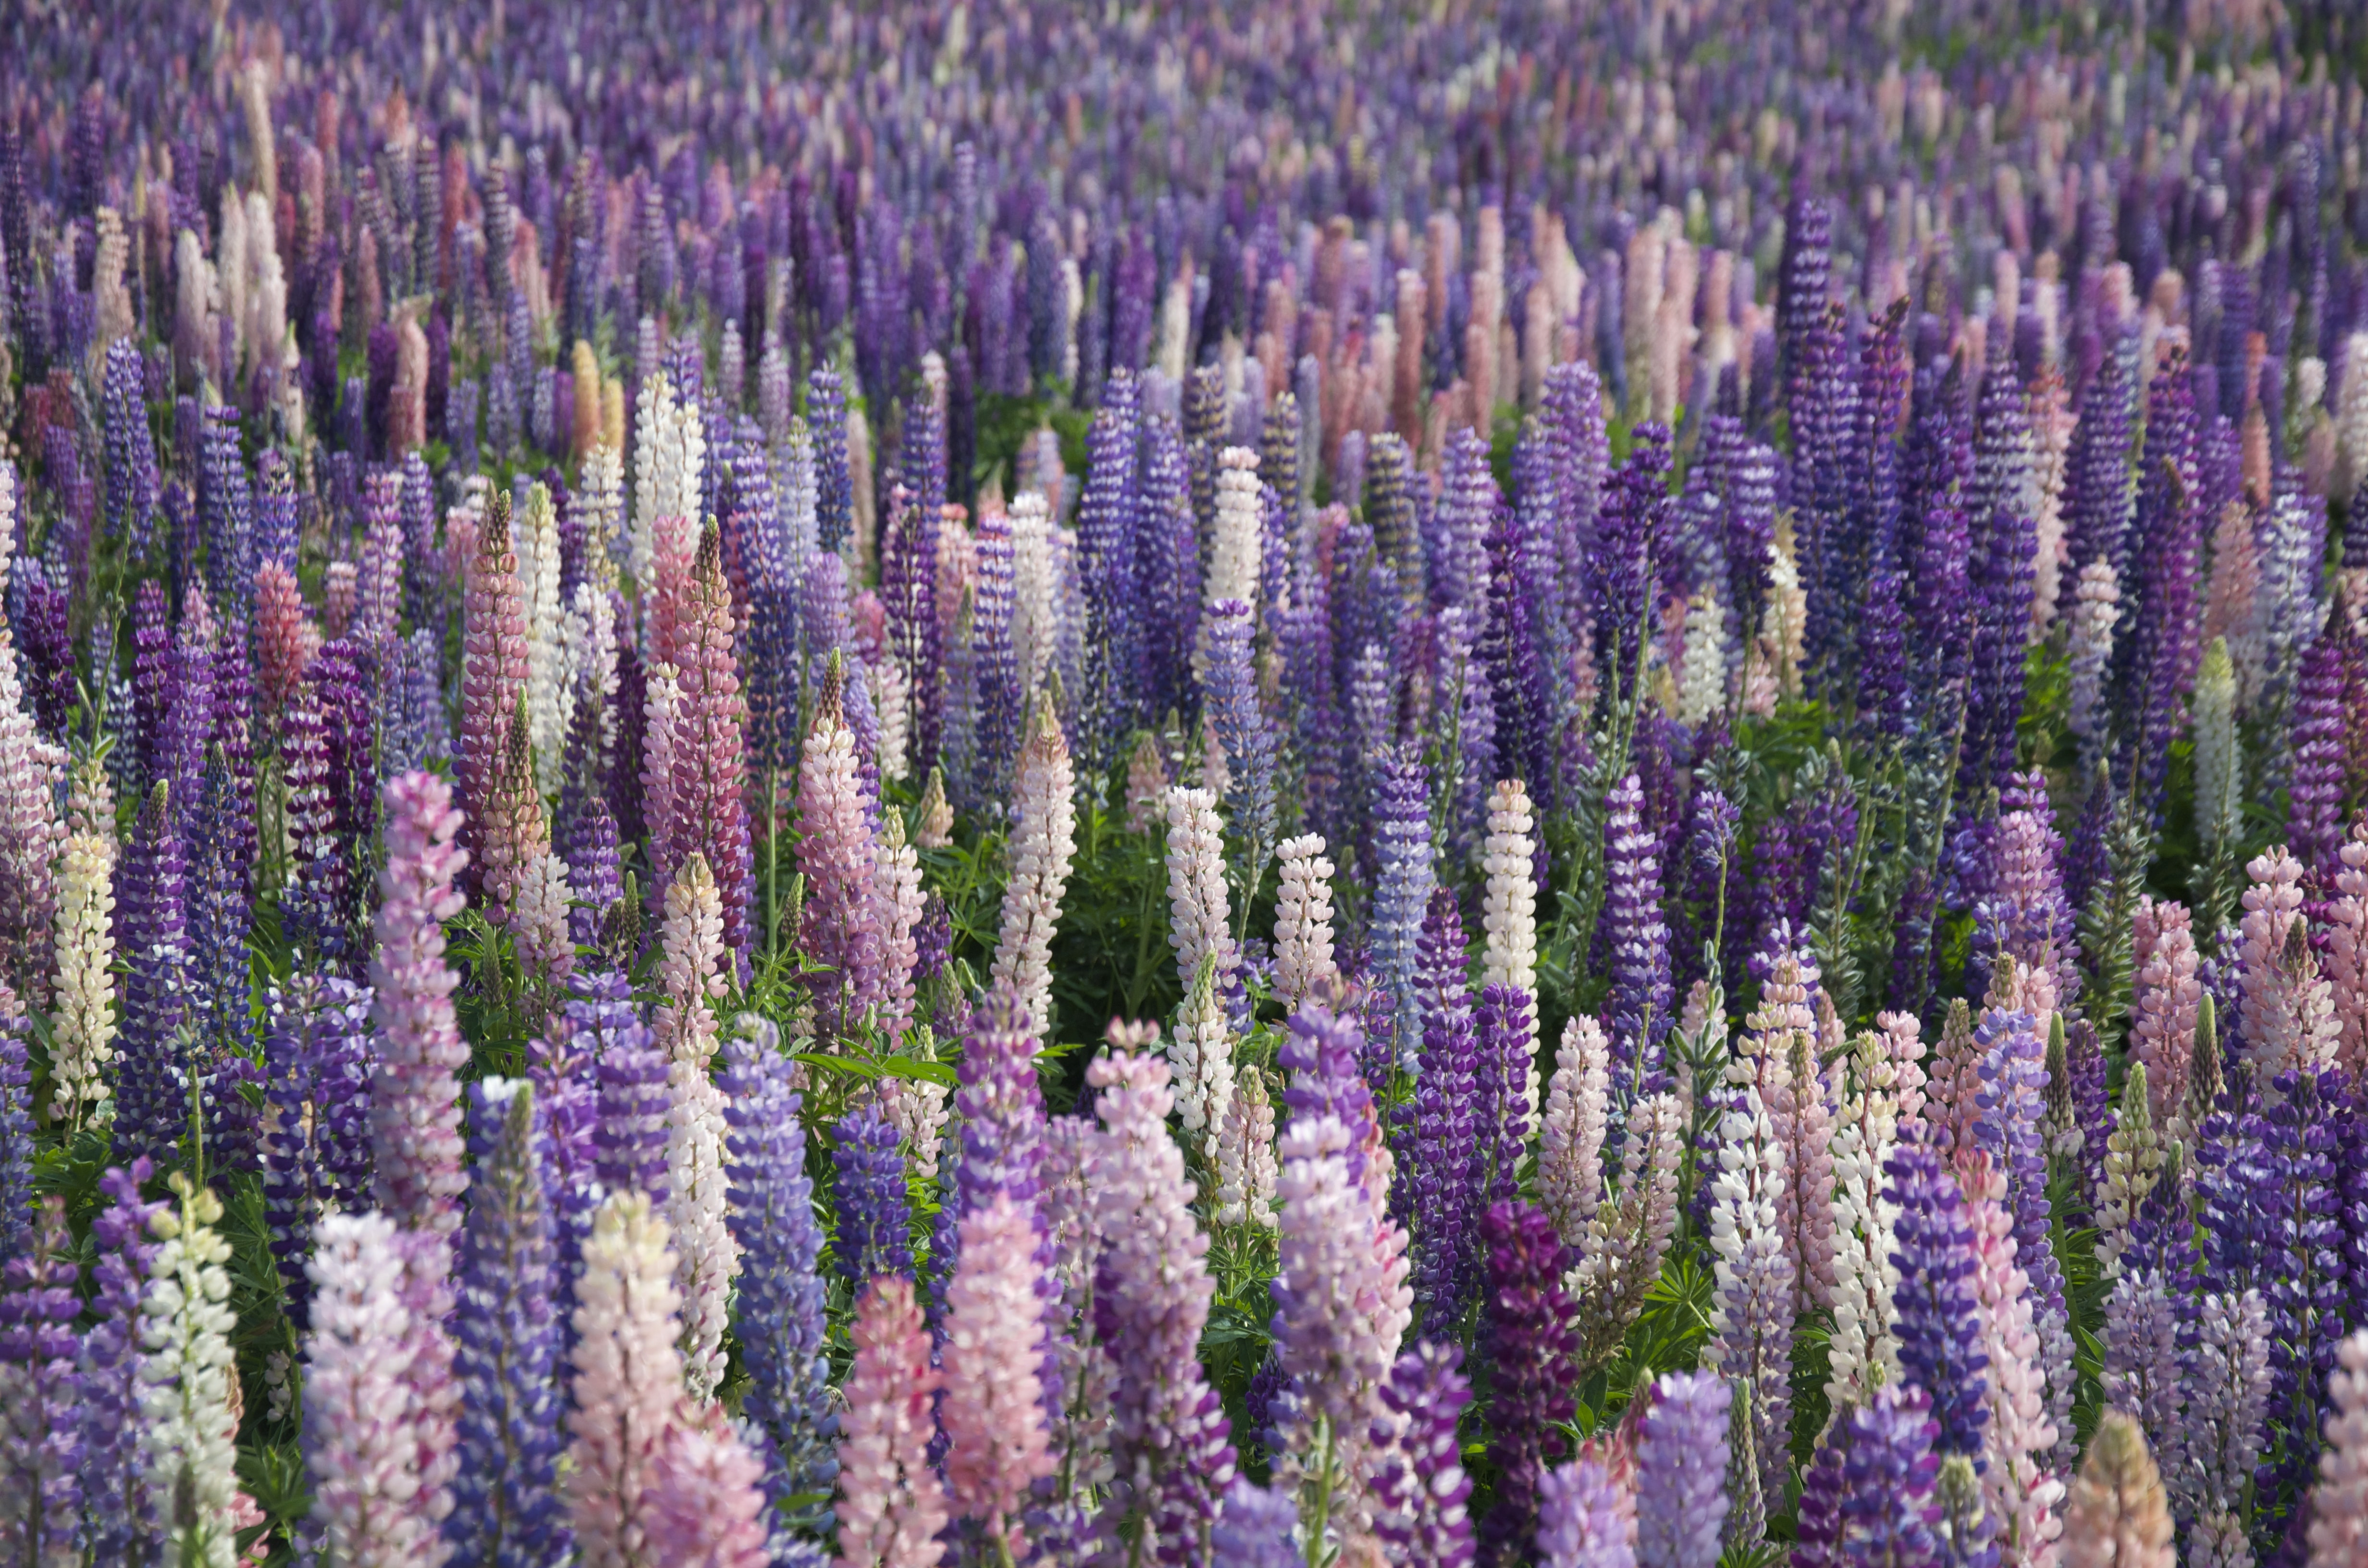 A field with column-like clusters of lupine flowers in various shades of pink and purple